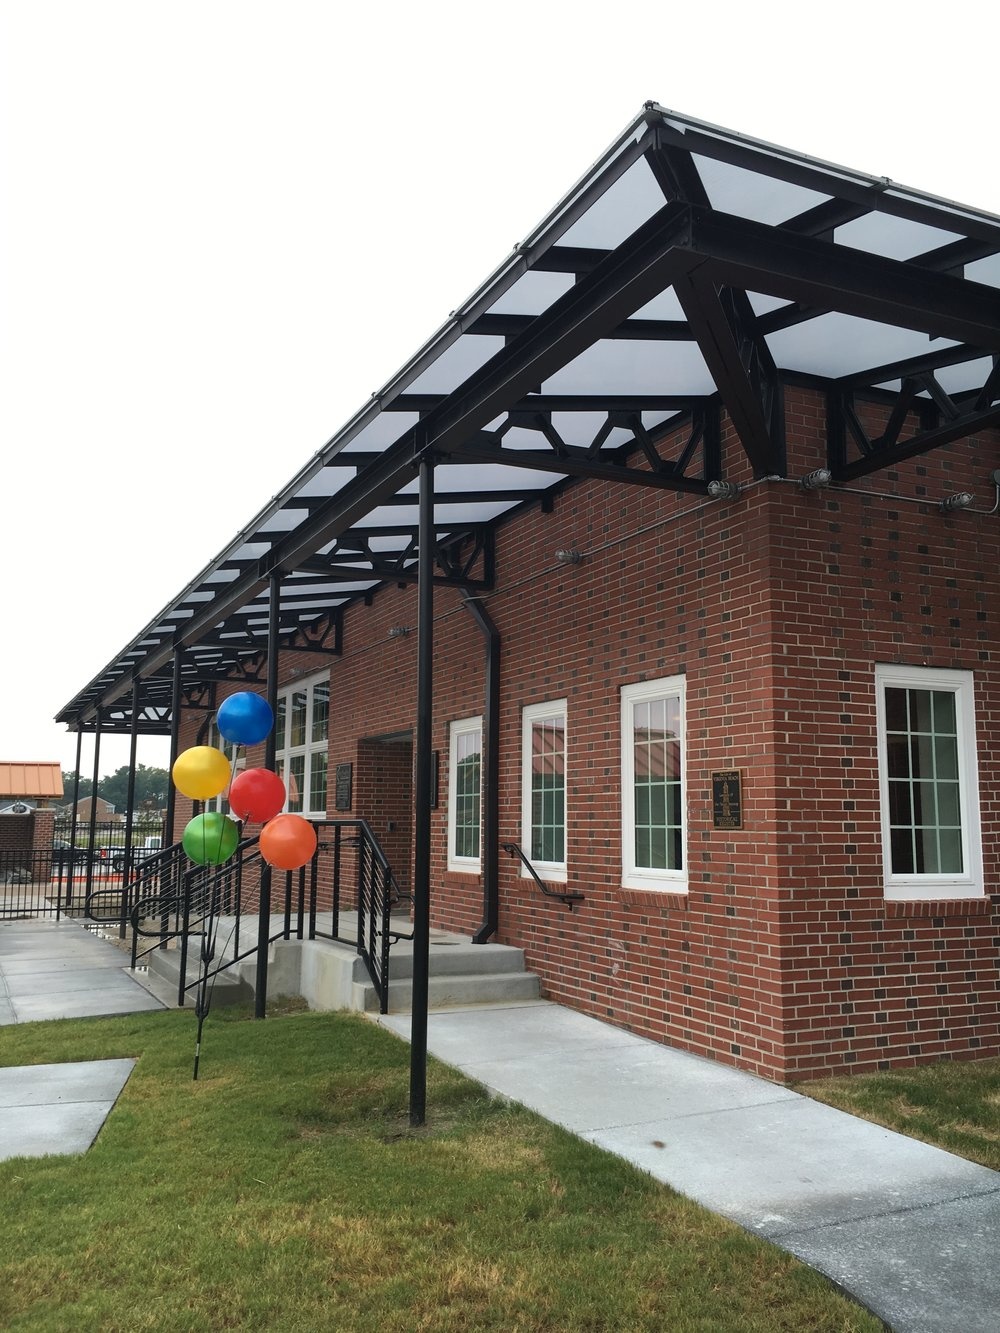 The original Cafeteria converted into a new social & activity space for the community.